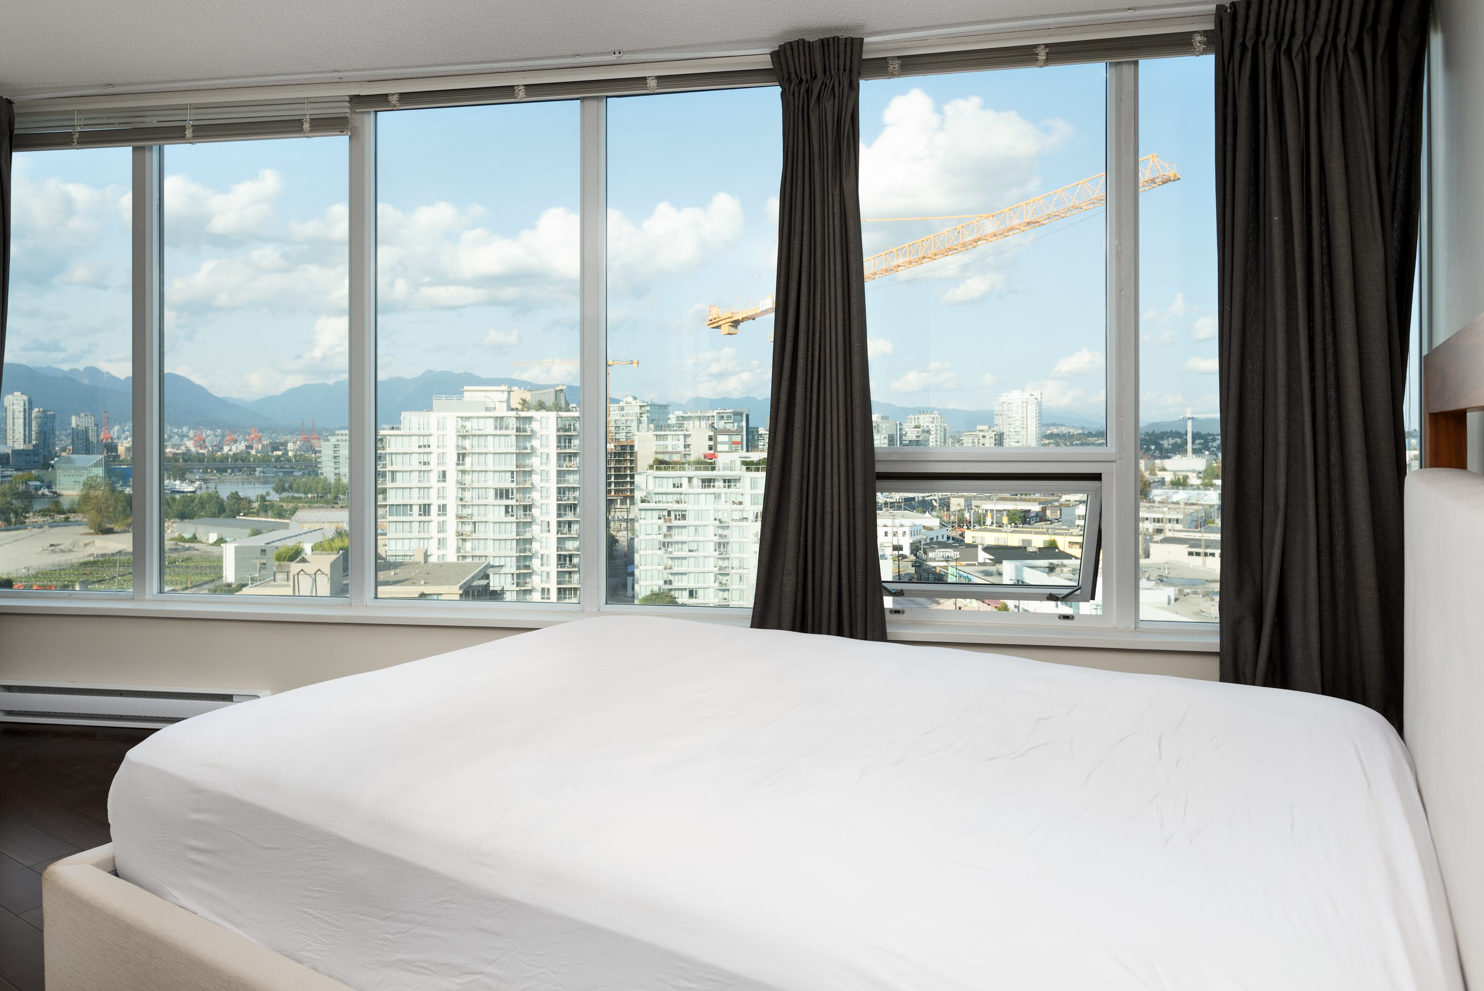 Bedroom in Vancouver rental condo with views of the city.